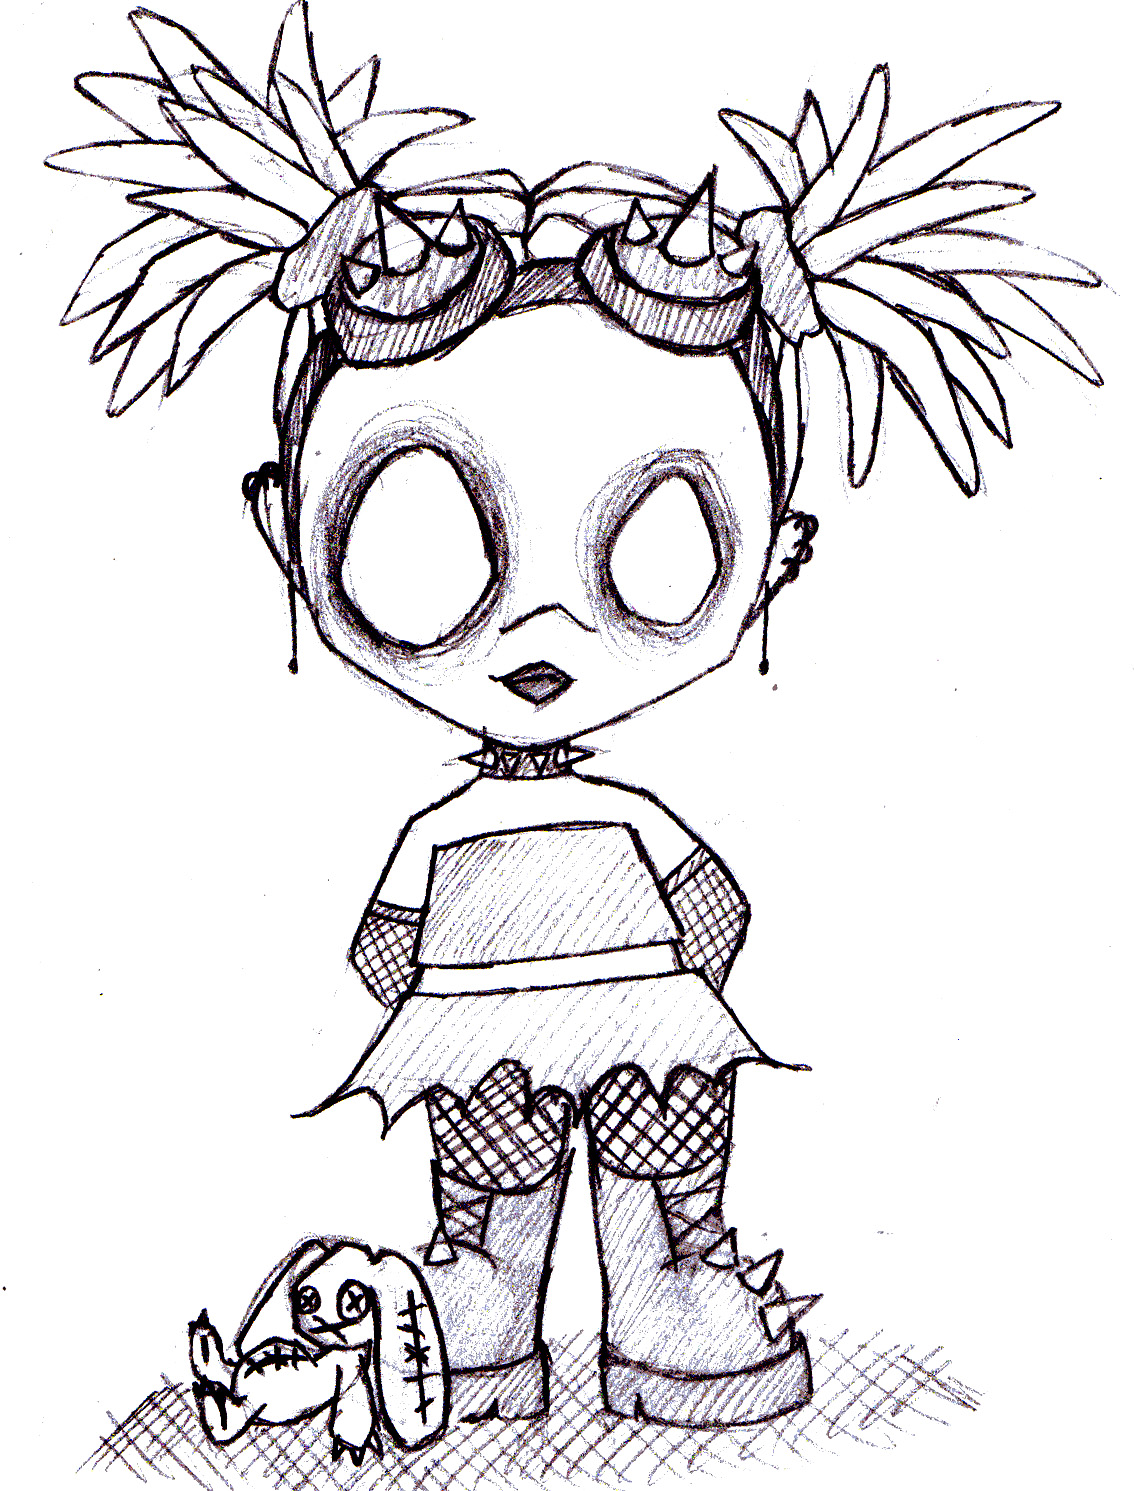 Zombie Little Girl Tattoo Top Zombie Girl Drawin...